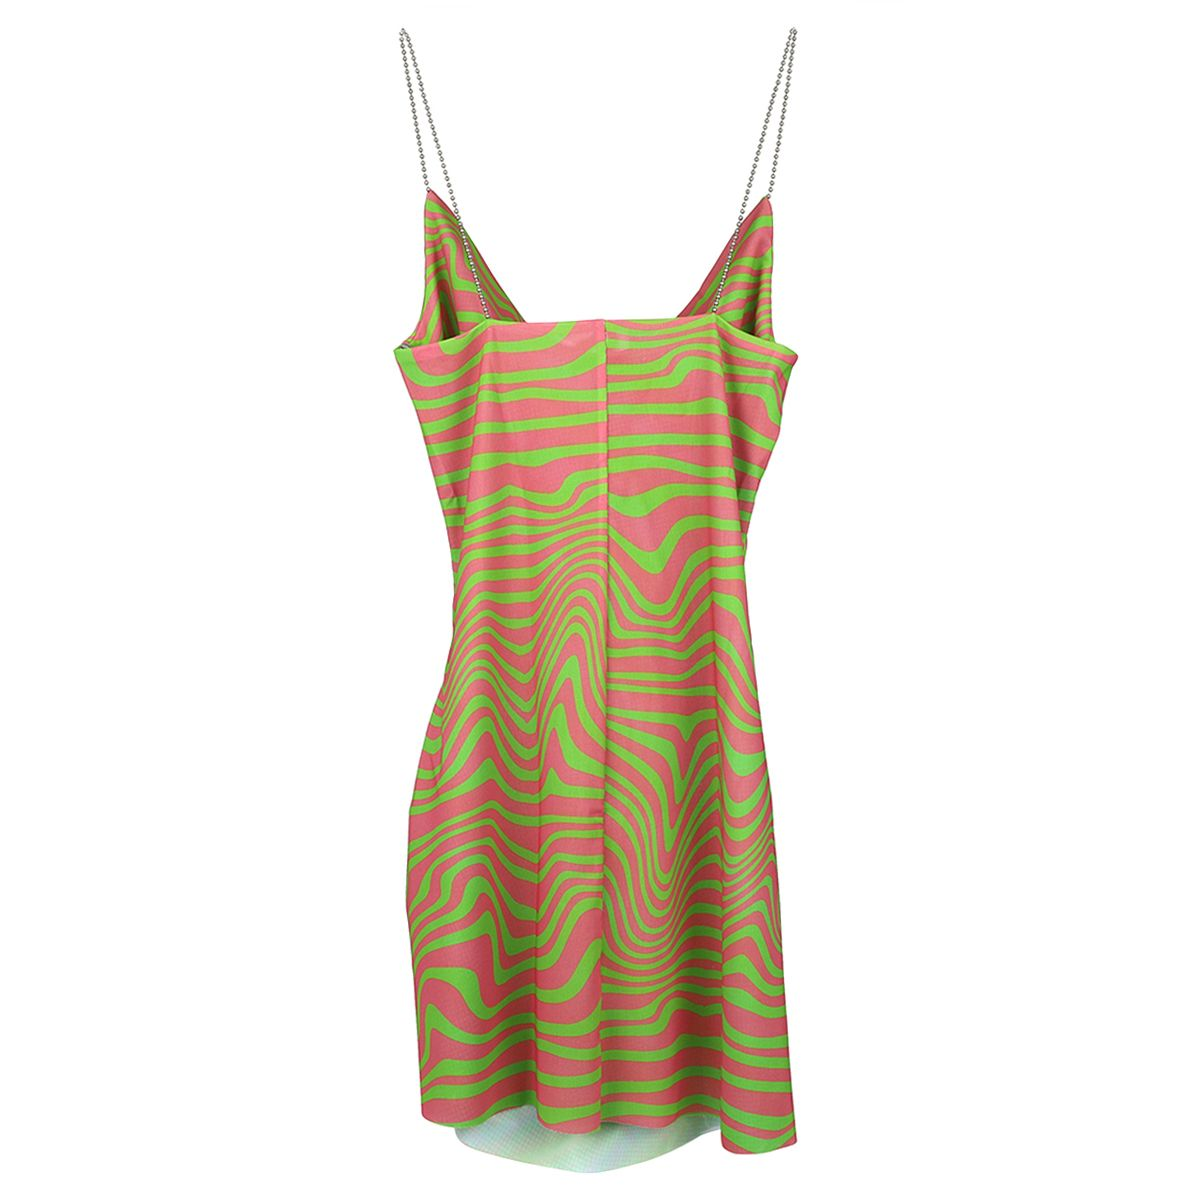 MAISIE WILEN TANK DRESS / PINK-GREEN